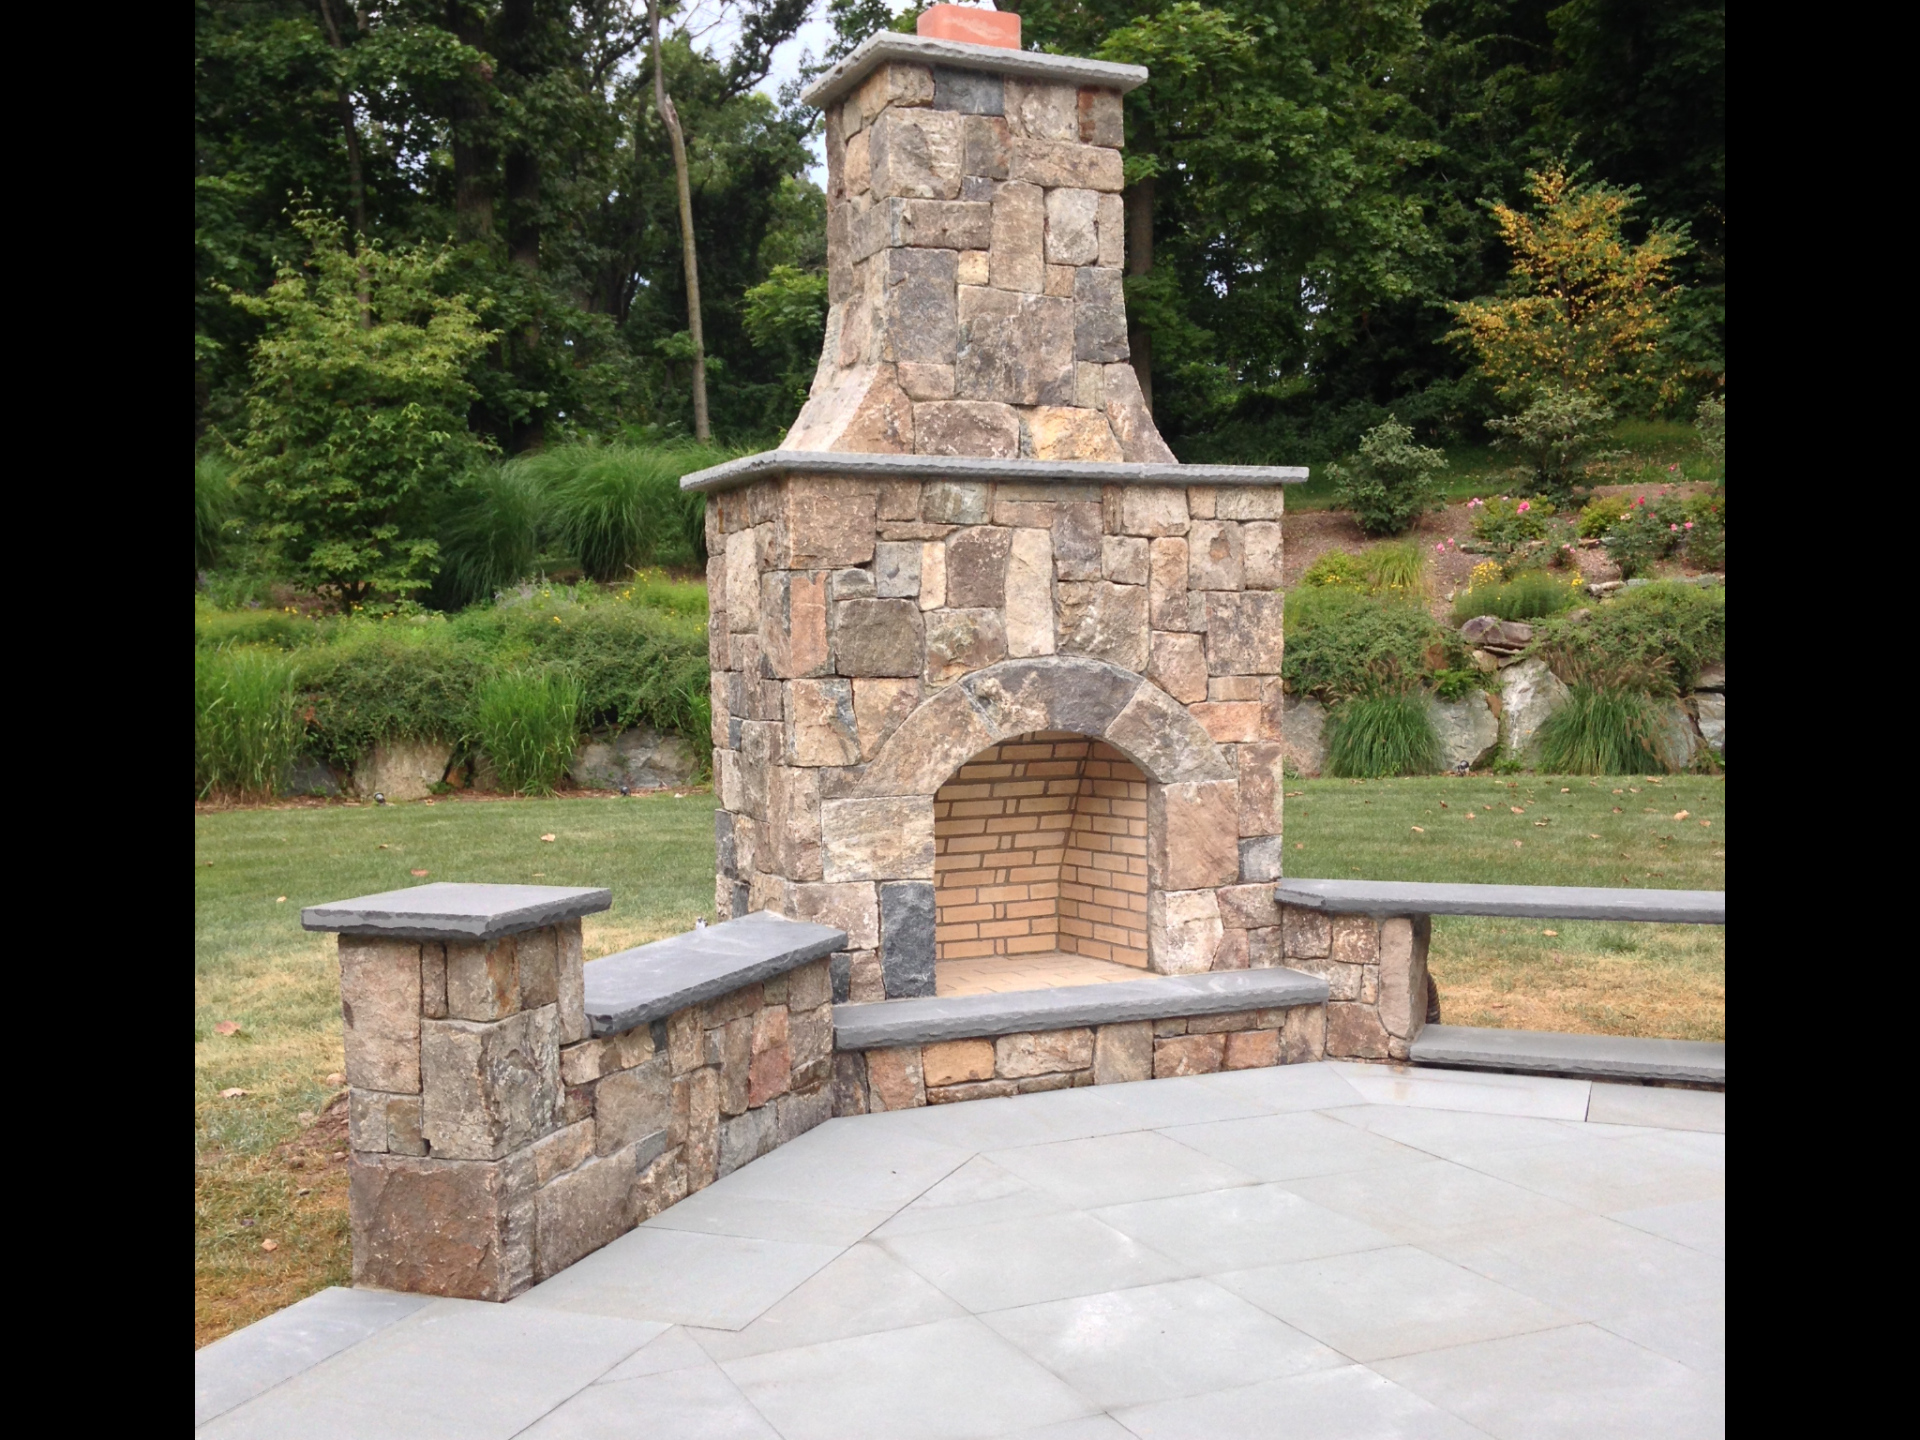 OUTDOOR KITCHENS, FIRE PLACES, & FIRE PITS in Chatham, NJ